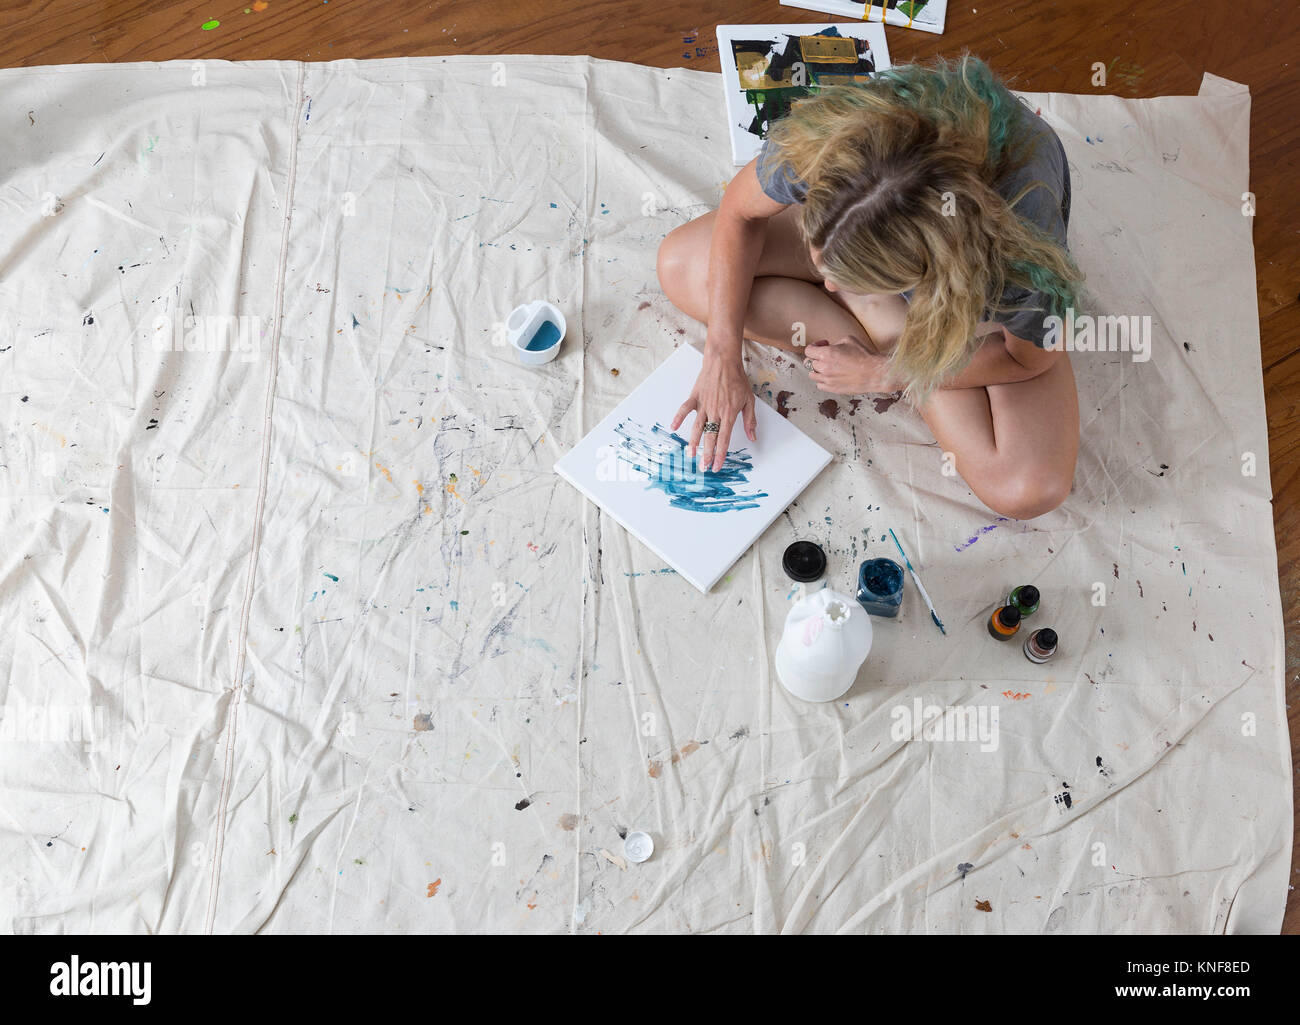 Overhead view of female artist sitting on dust sheet finger painting abstract canvas - Stock Image